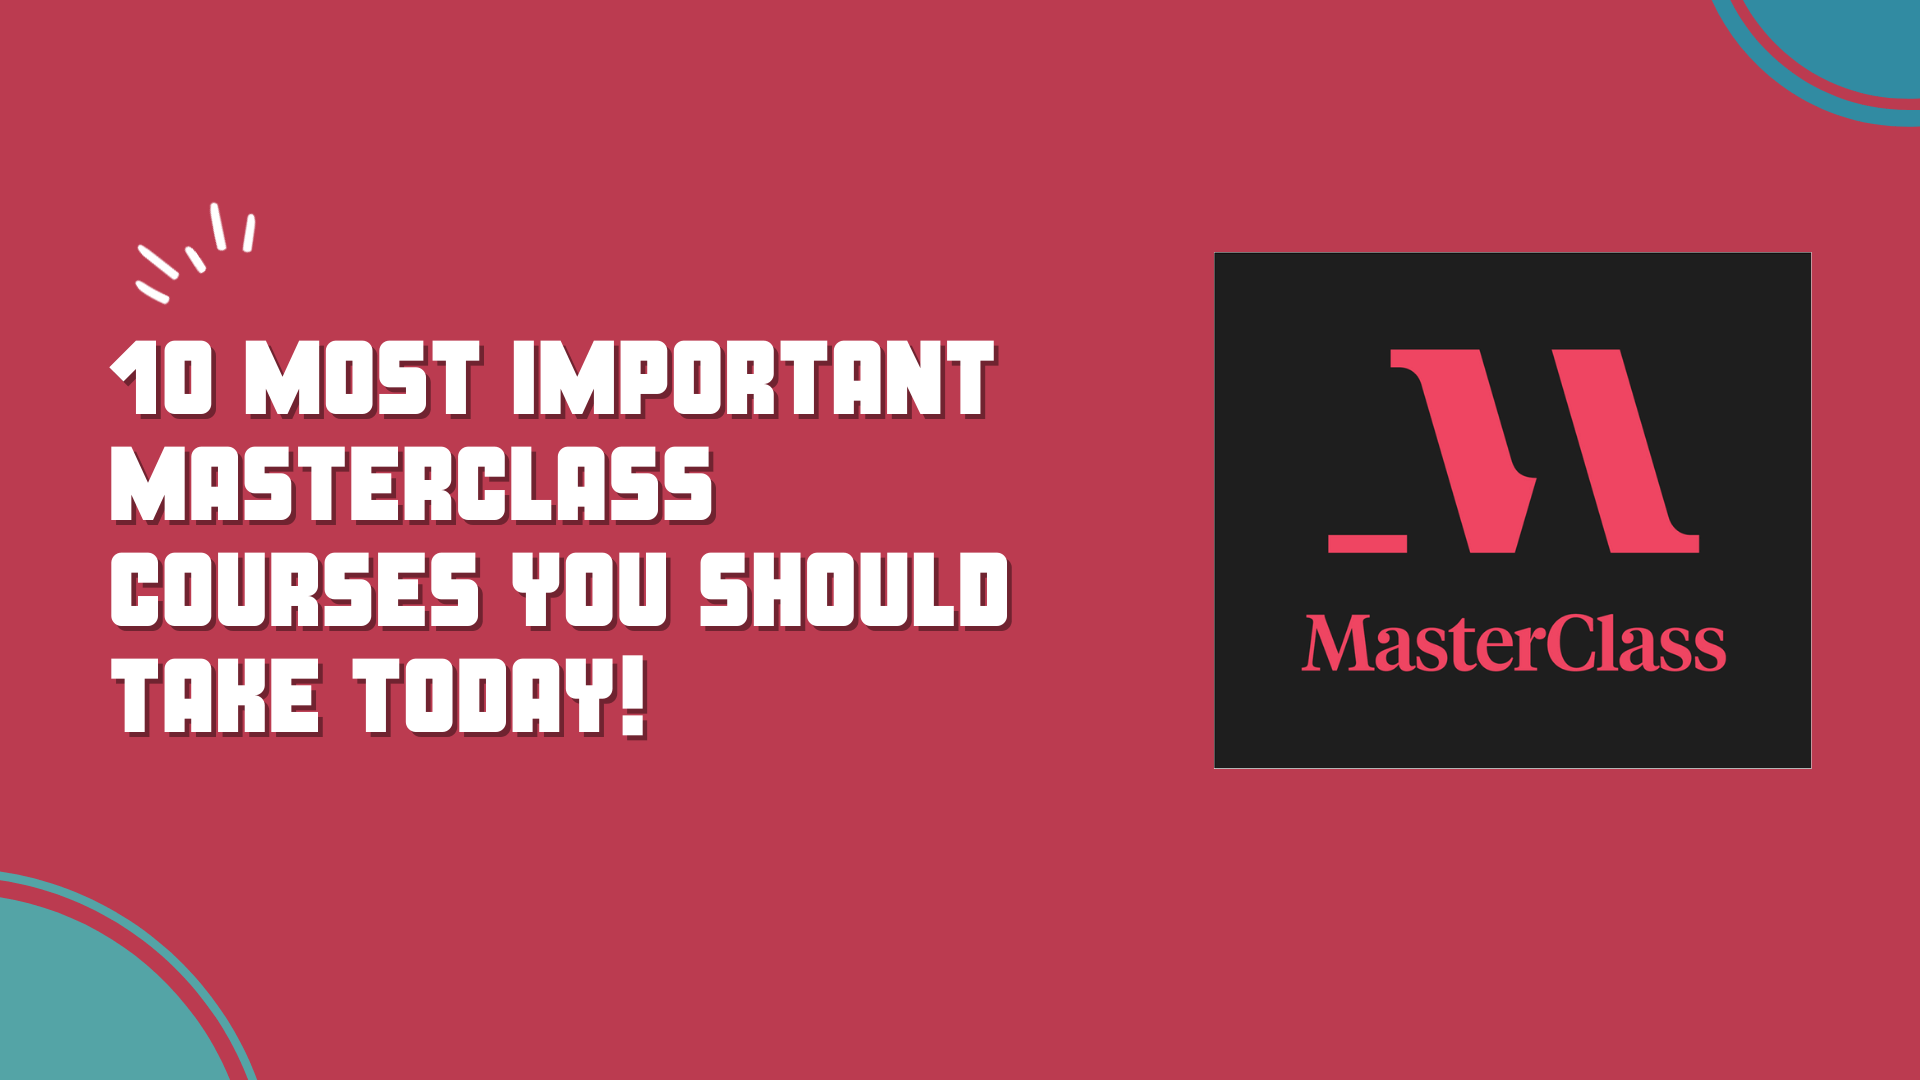 10 Most Important MasterClass Courses You Should Take Today!